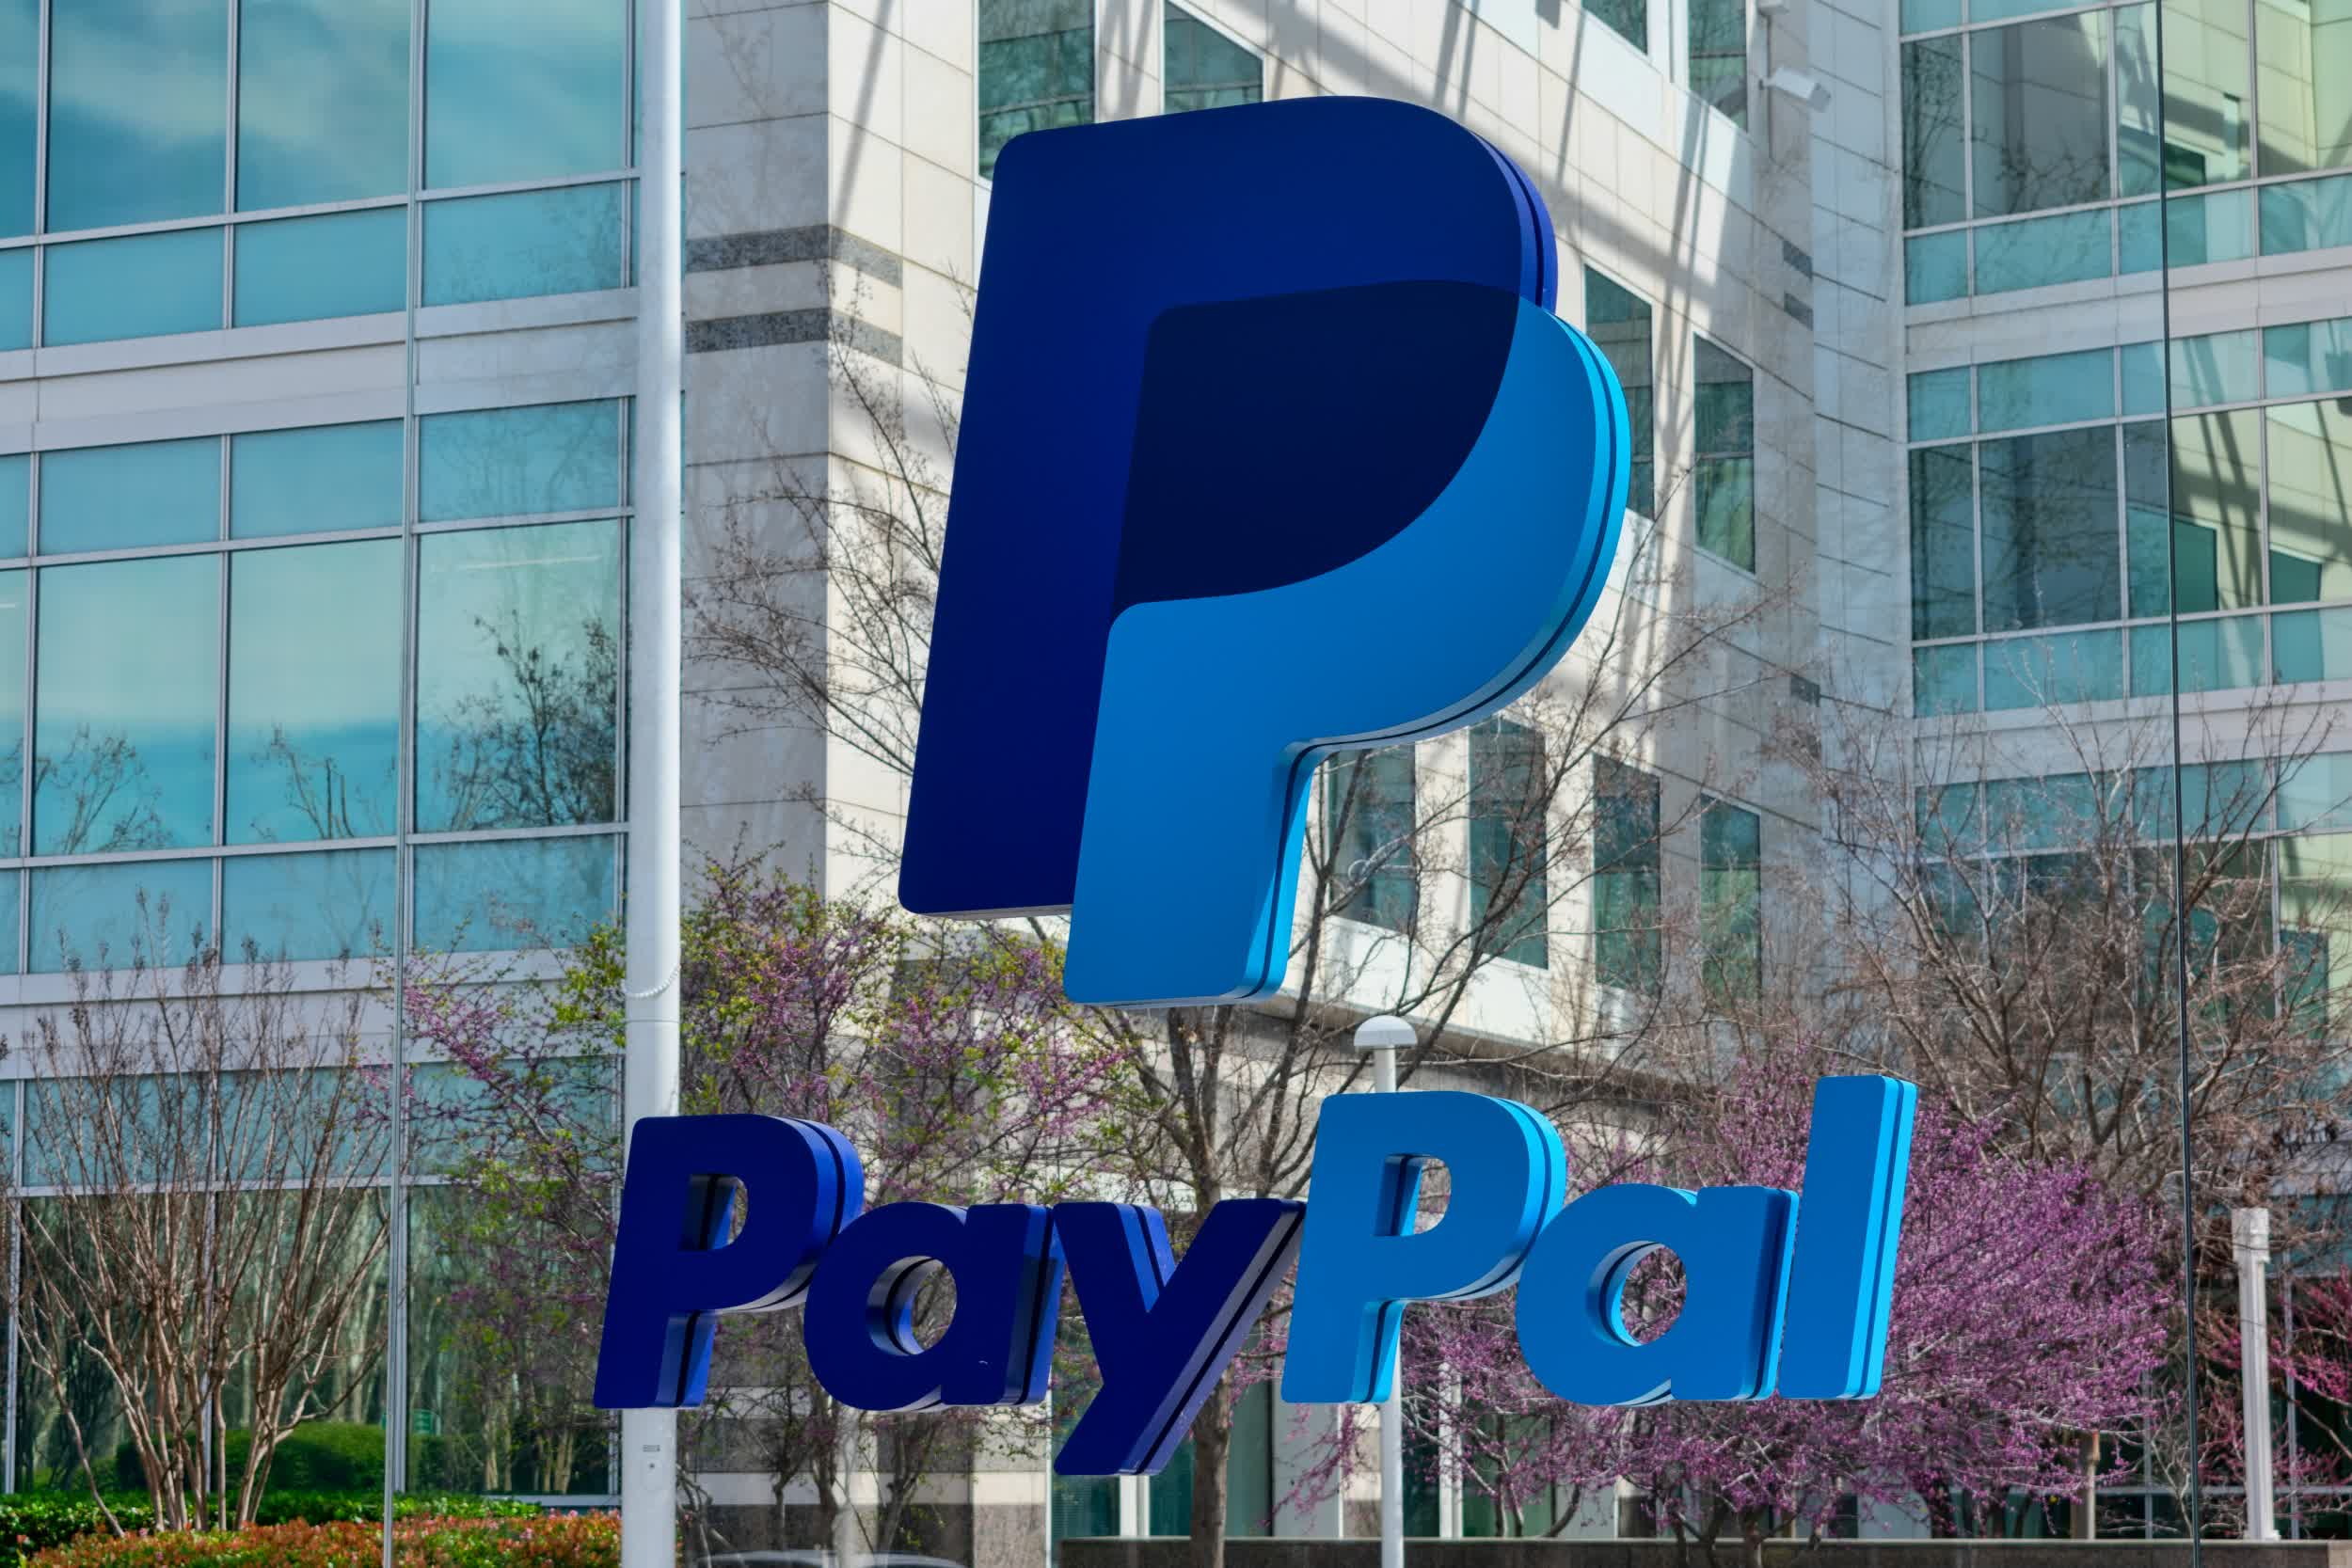 PayPal is riding the e-commerce boom to record earnings